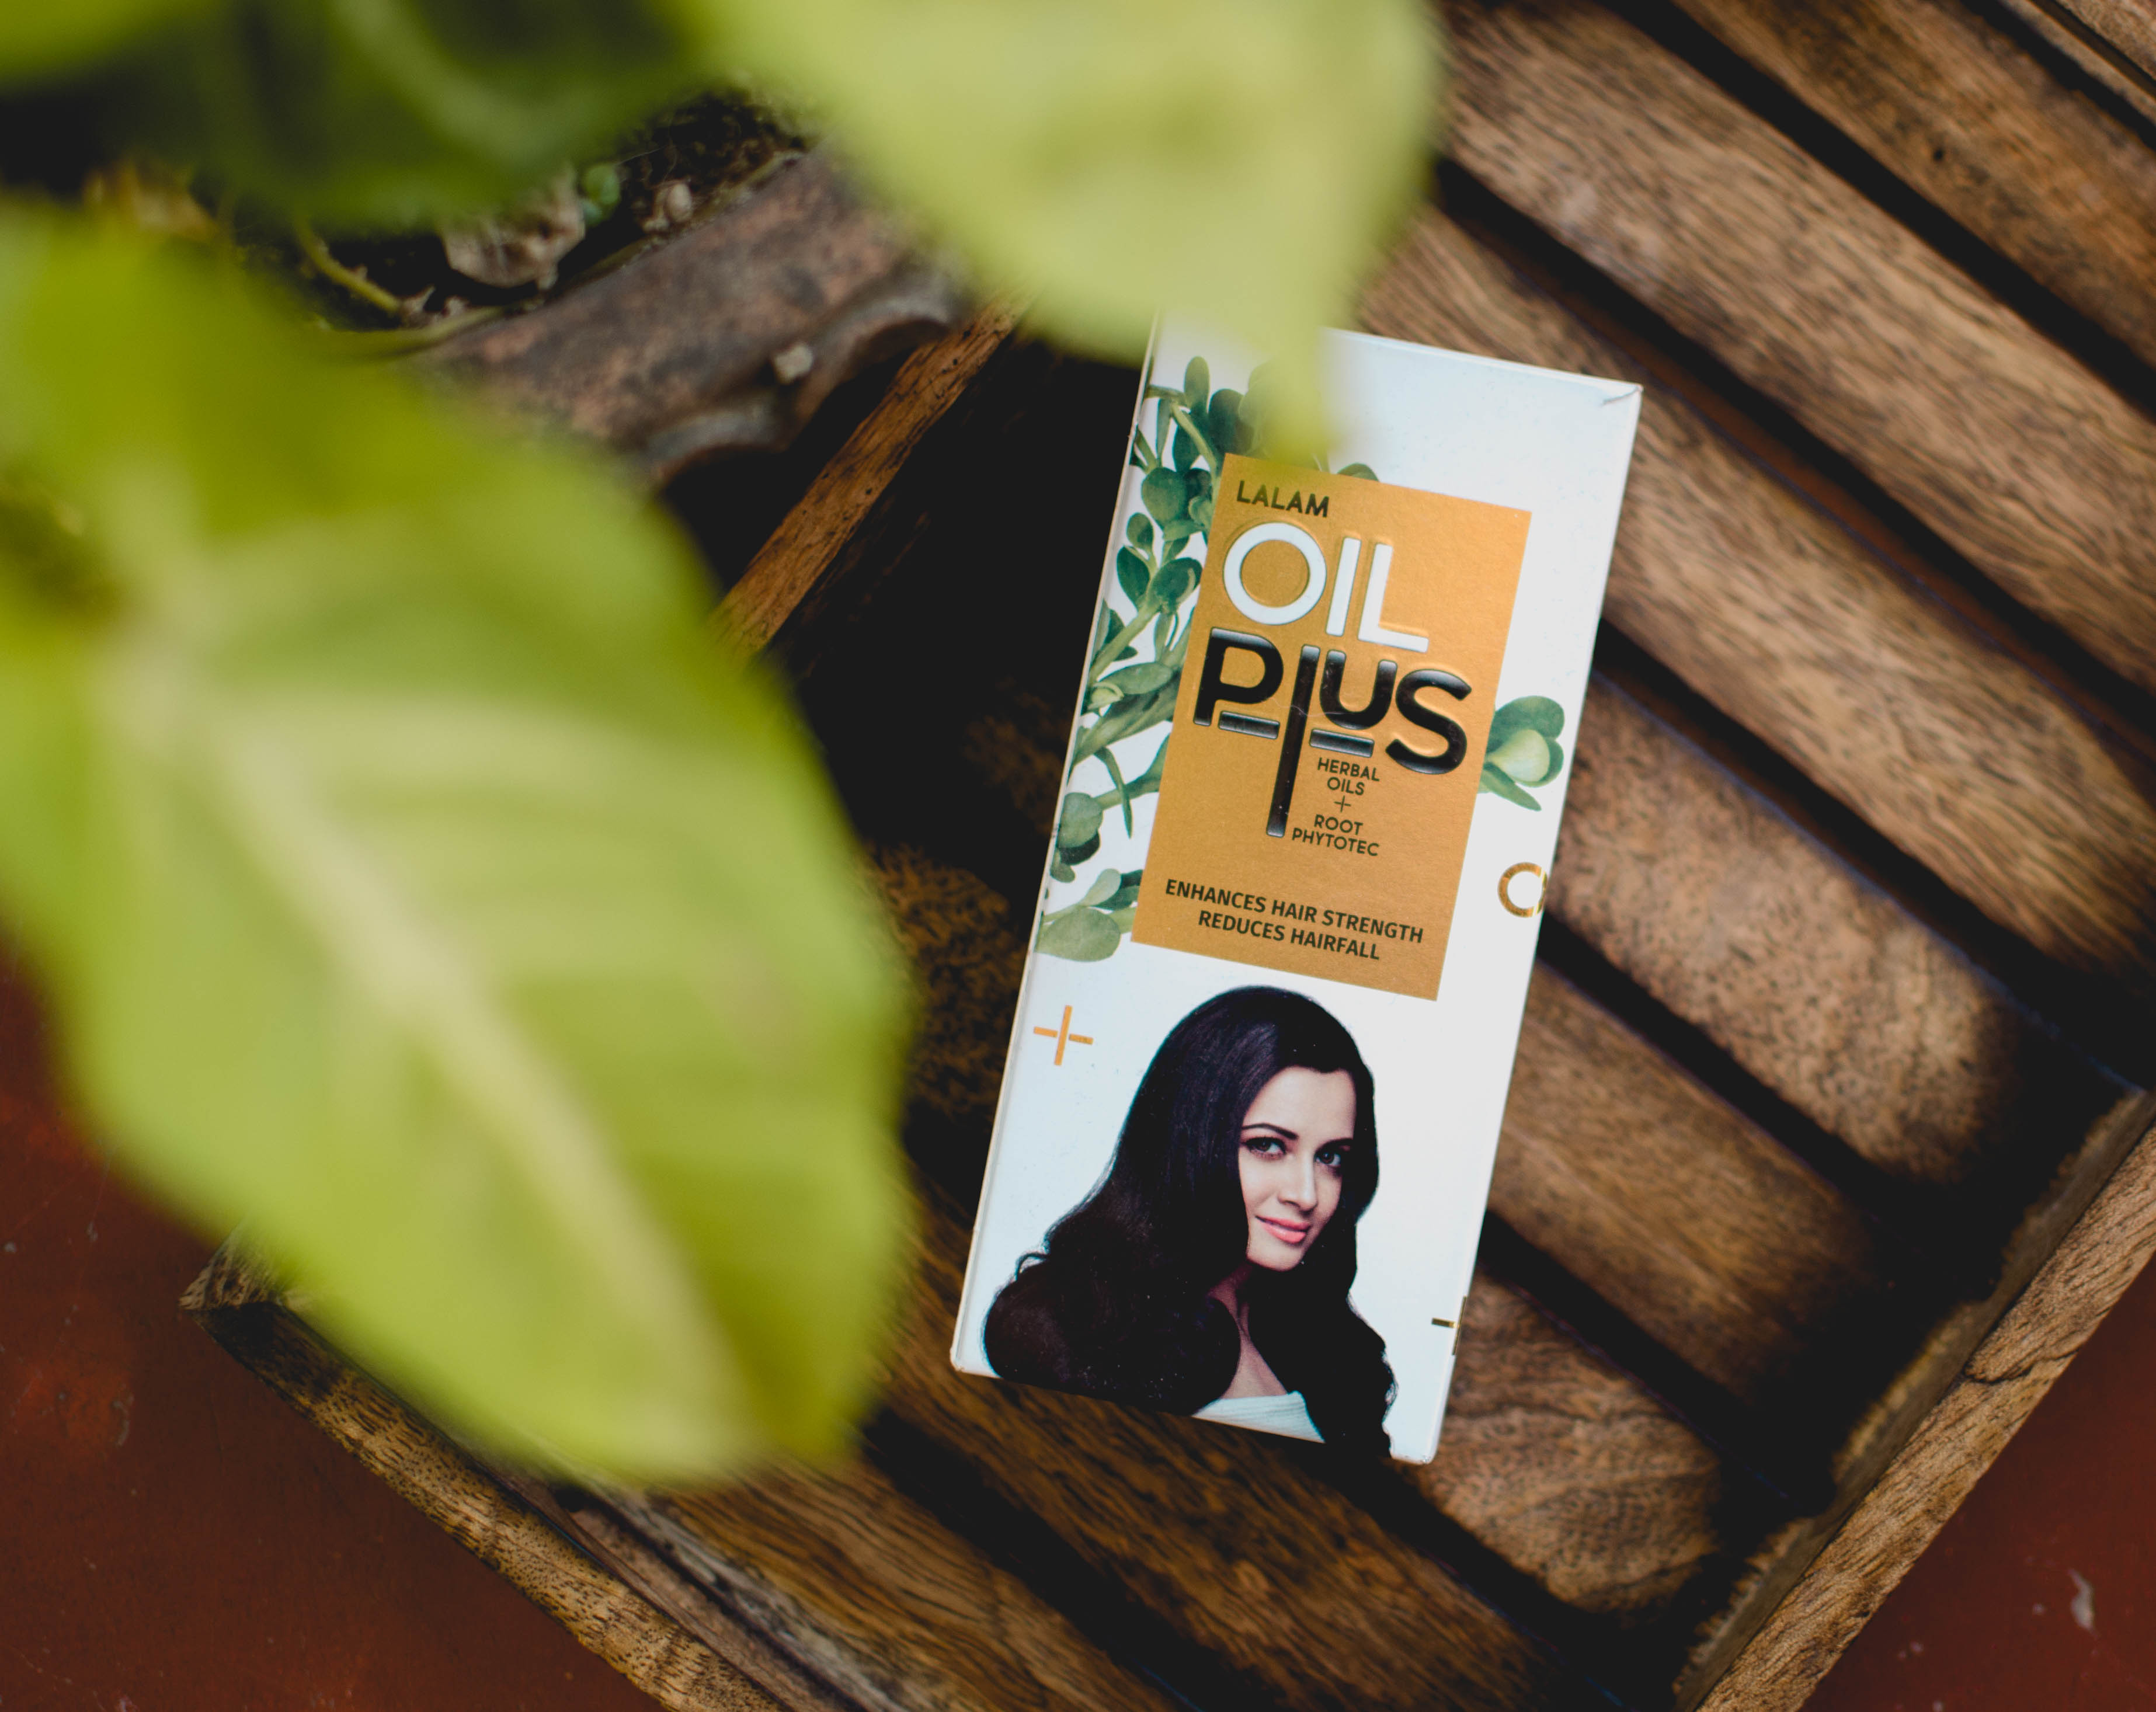 Lalam Oil Plus Hair Oil Review | Cherry On Top